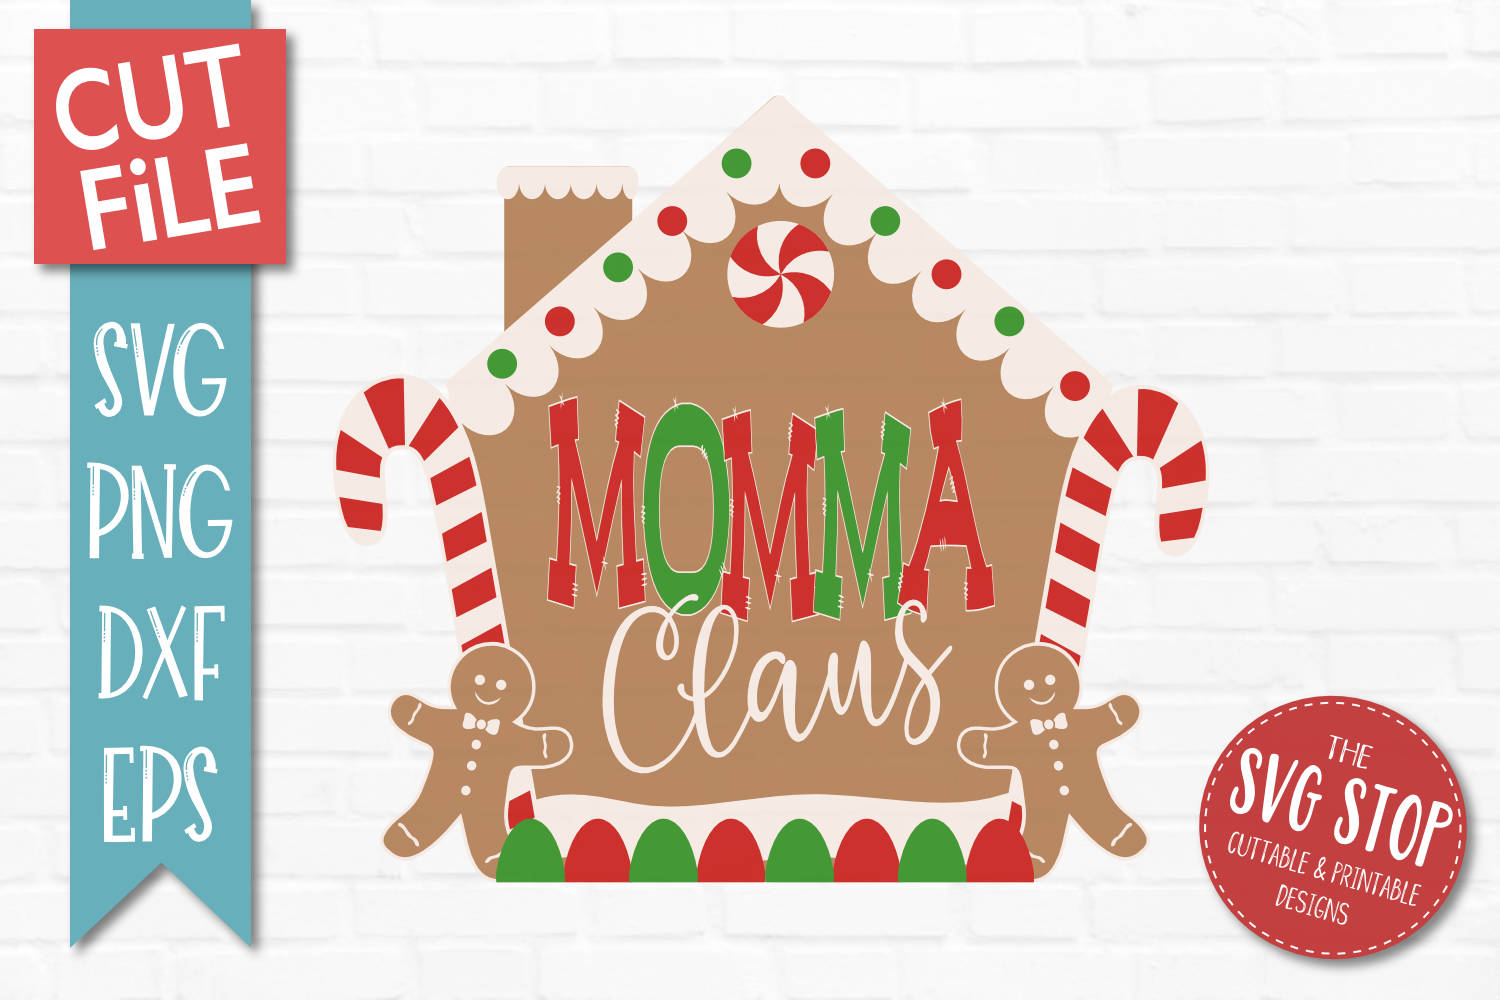 Momma Claus Gingerbread Christmas SVG, PNG, DXF, EPS example image 1